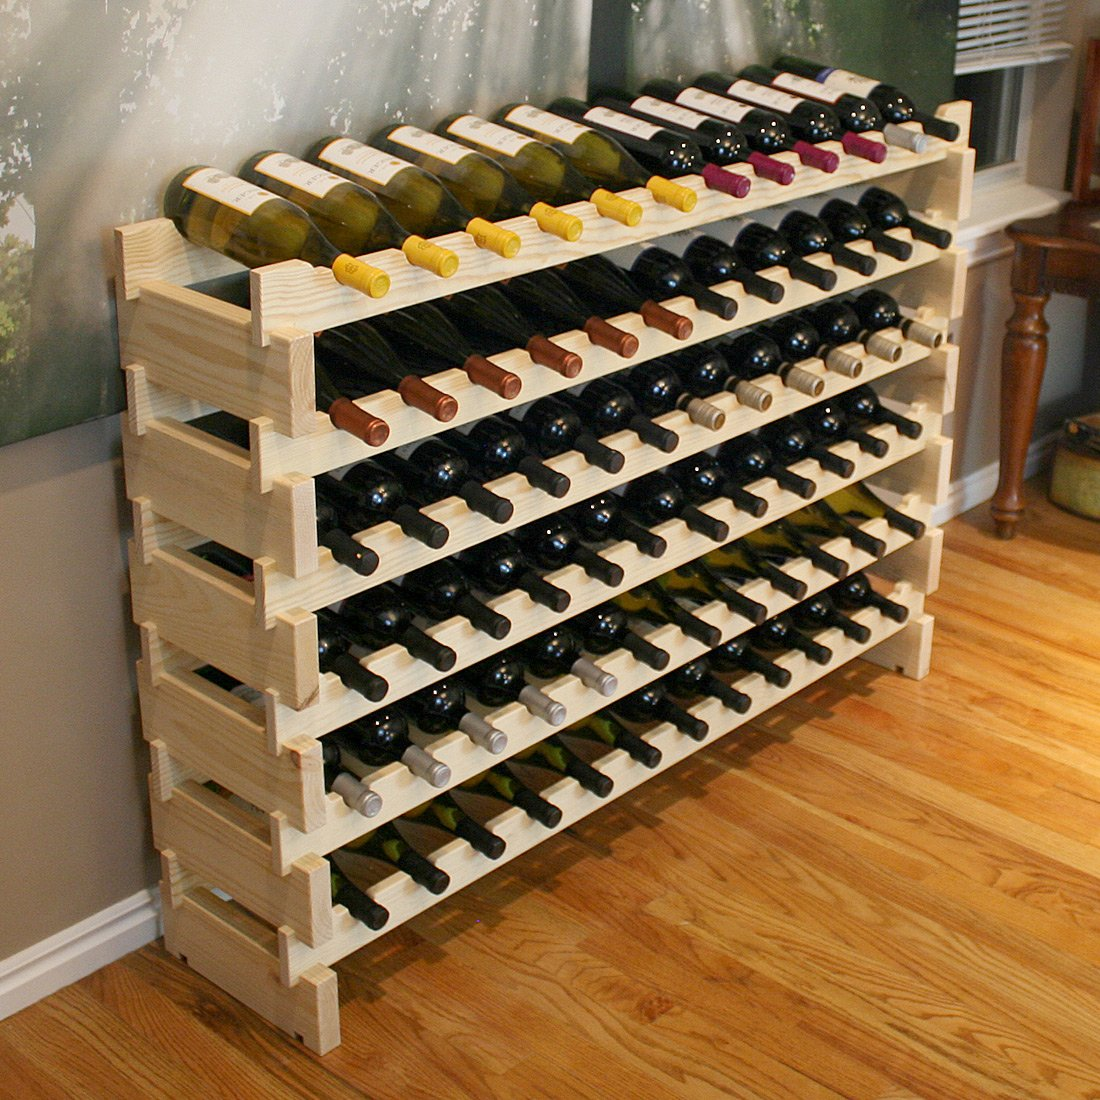 Creekside 72 Bottle Long Scalloped Wine Rack (Pine) by Creekside - Easily stack multiple units - hardware and assembly free. Hand-sanded to perfection!, Pine